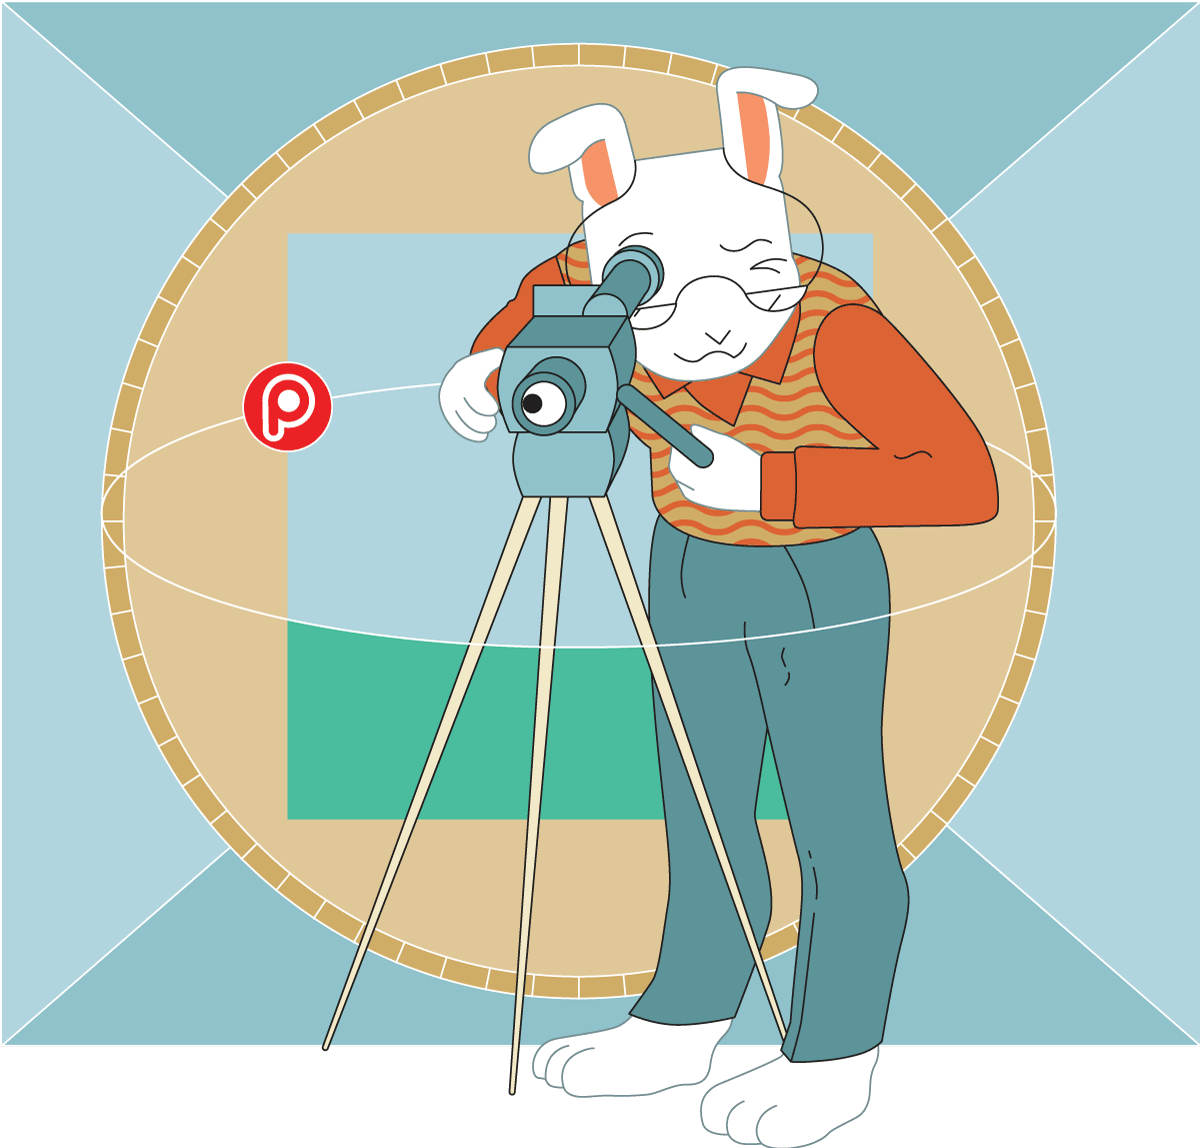 Cartoon of the Pooka rabbit taking a careful look through a camera lens